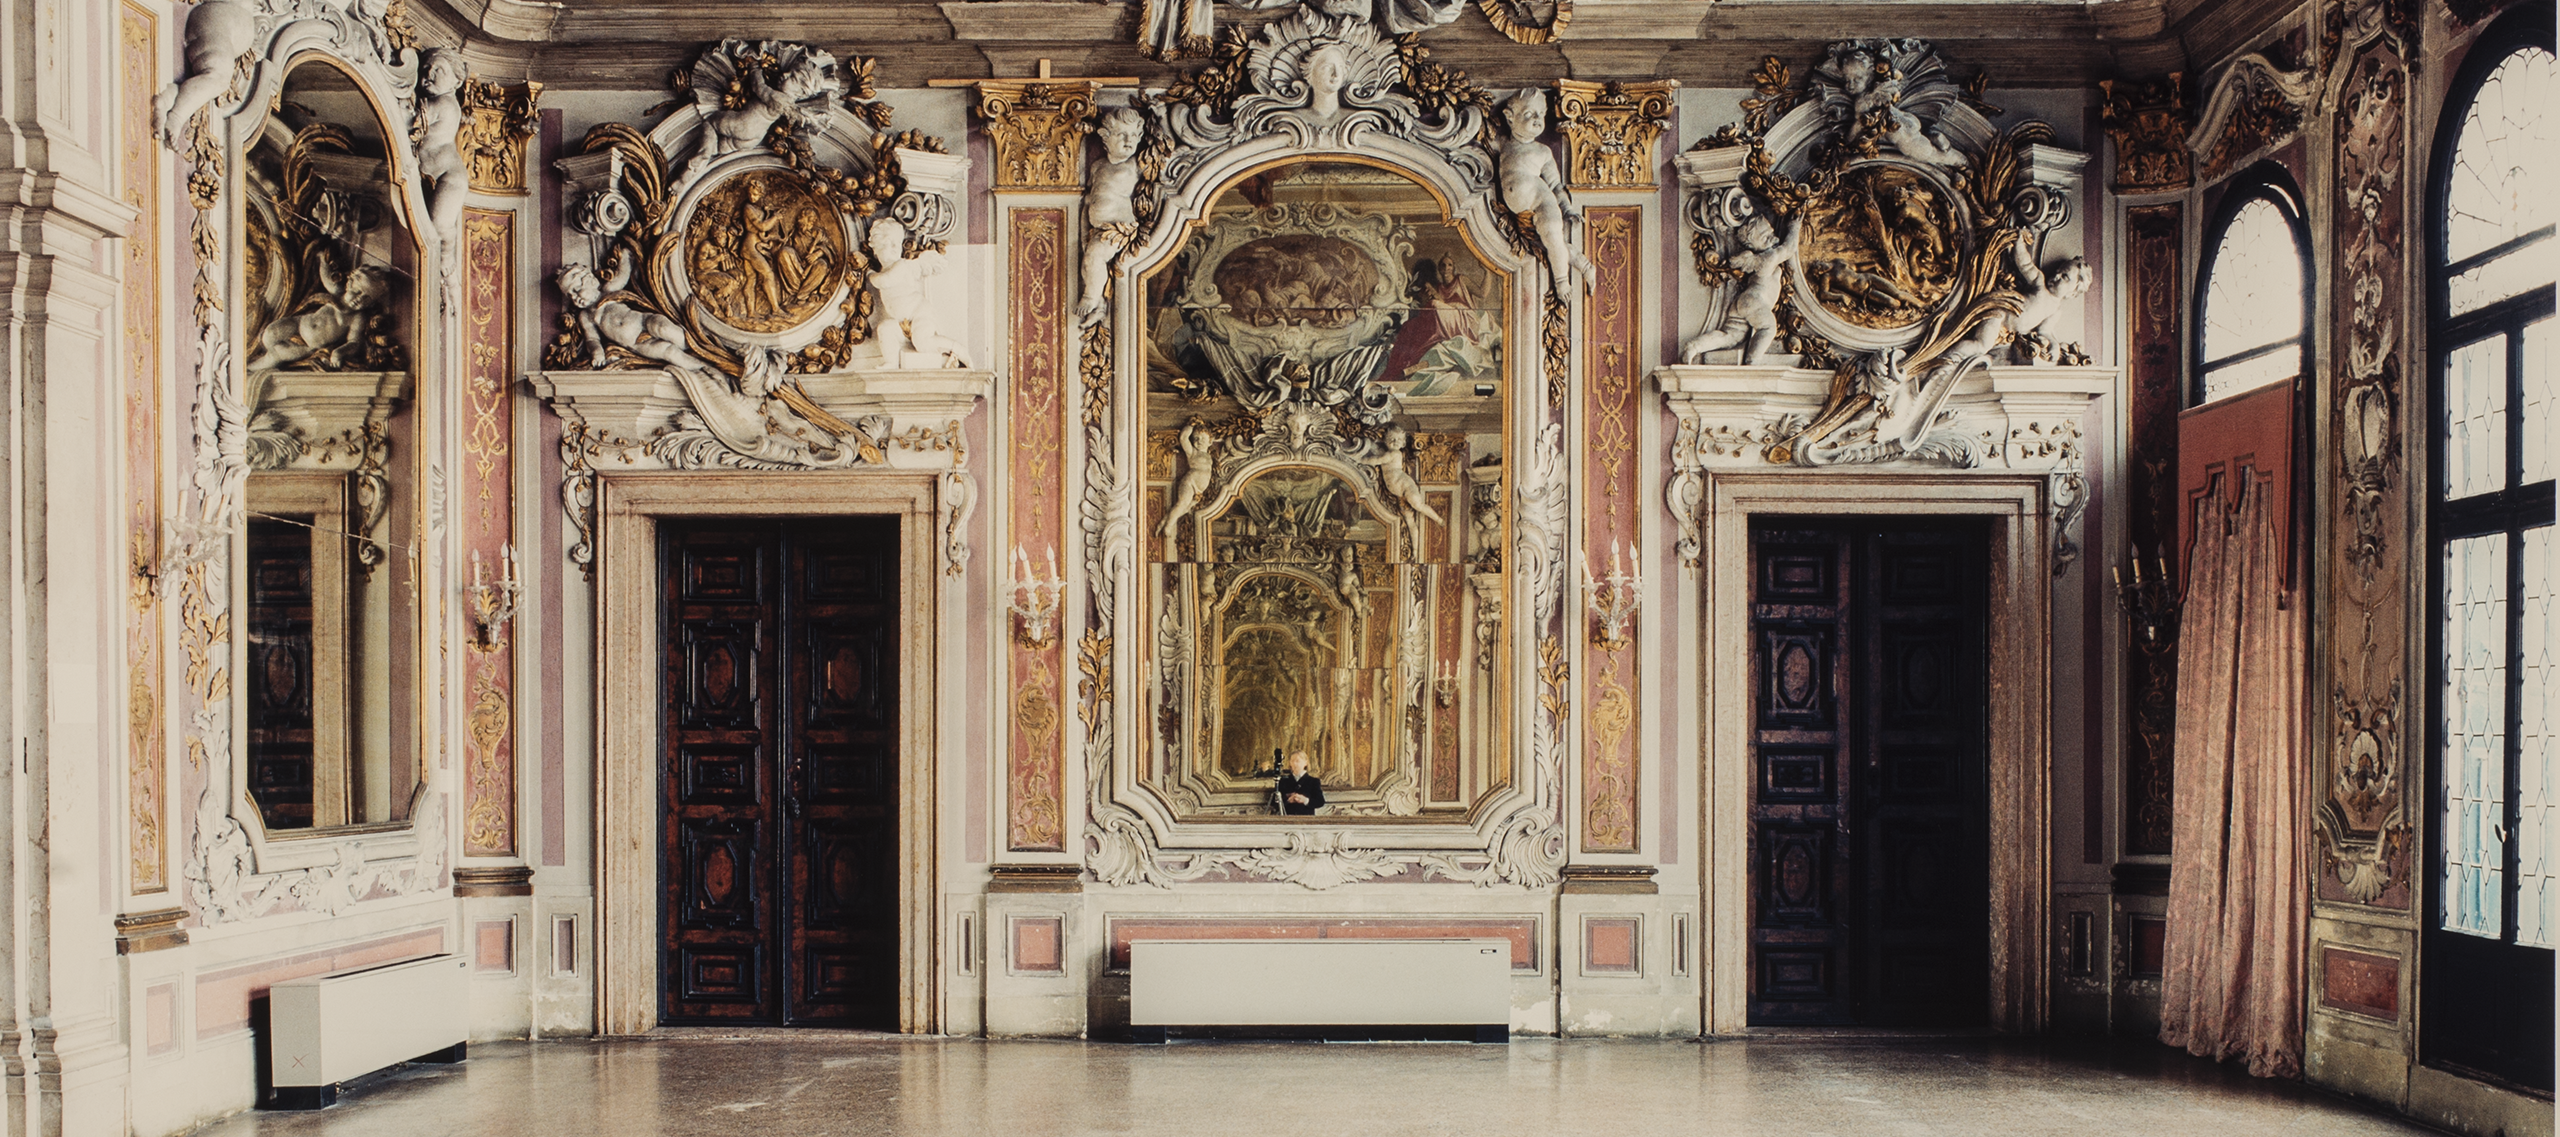 A color photograph of a large, ornate room in a palace. The expansive floor is bare and empty. At the other end of the room, a large ornate mirror hangs between two dark wooden doors. The moldings and details above the doors and mirror are extravagantly designed and a dramatic mural is featured at the very top of the wall. In the mirror, a small figure is seen, seemingly the photographer.